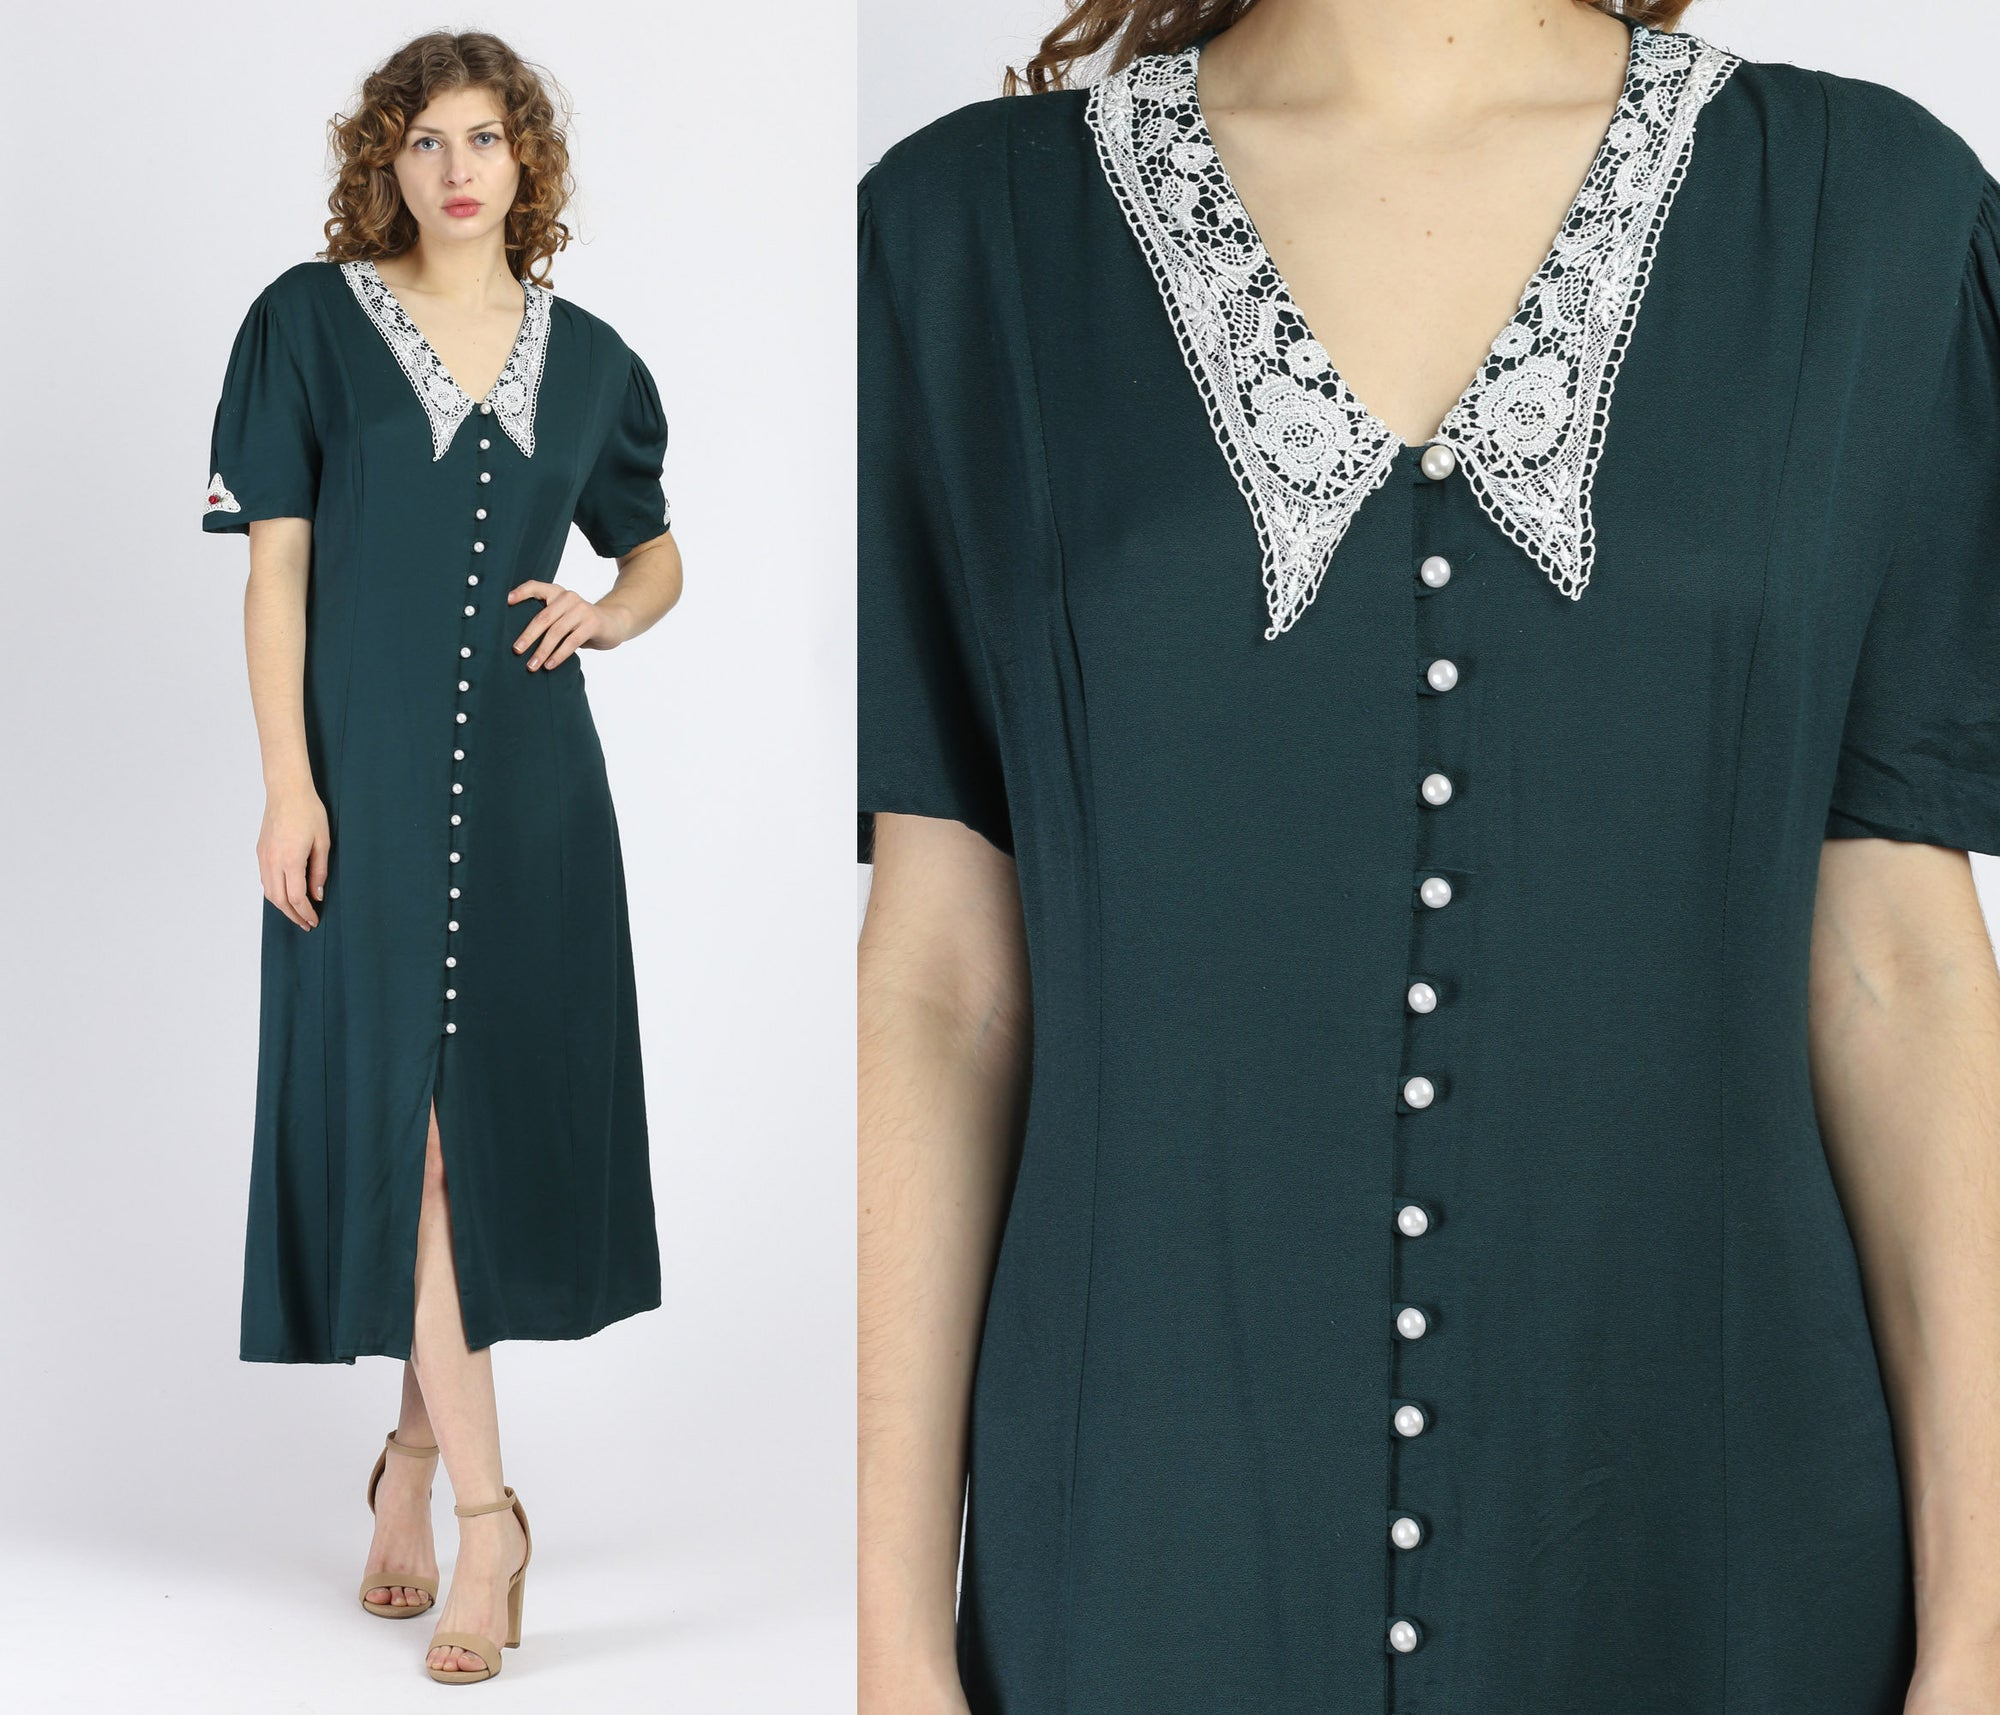 90s Emerald Green Lace Chelsea Collar Midi Dress - Extra Large